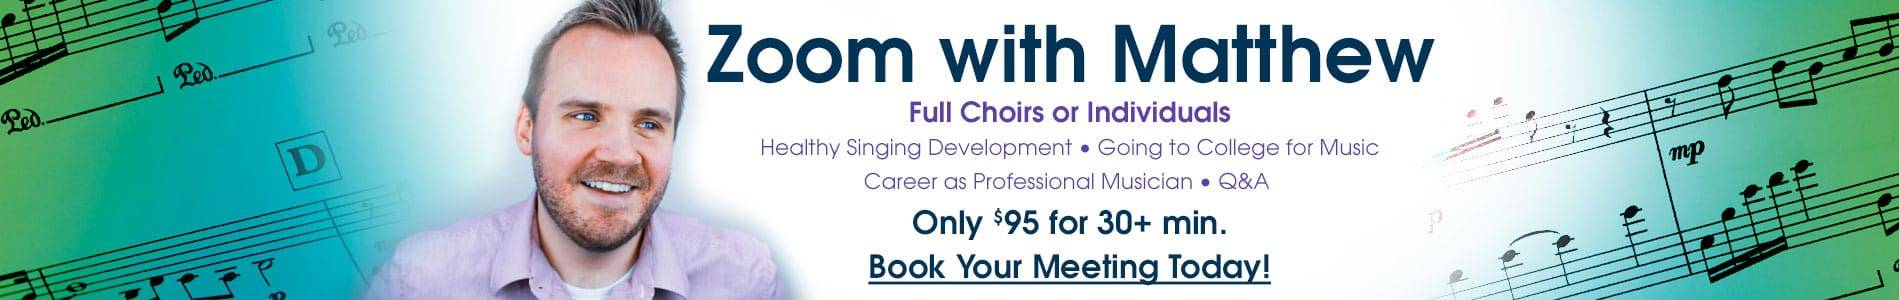 Full Choirs or Individual Singers can Zoom with Matthew for singing tips and advice.